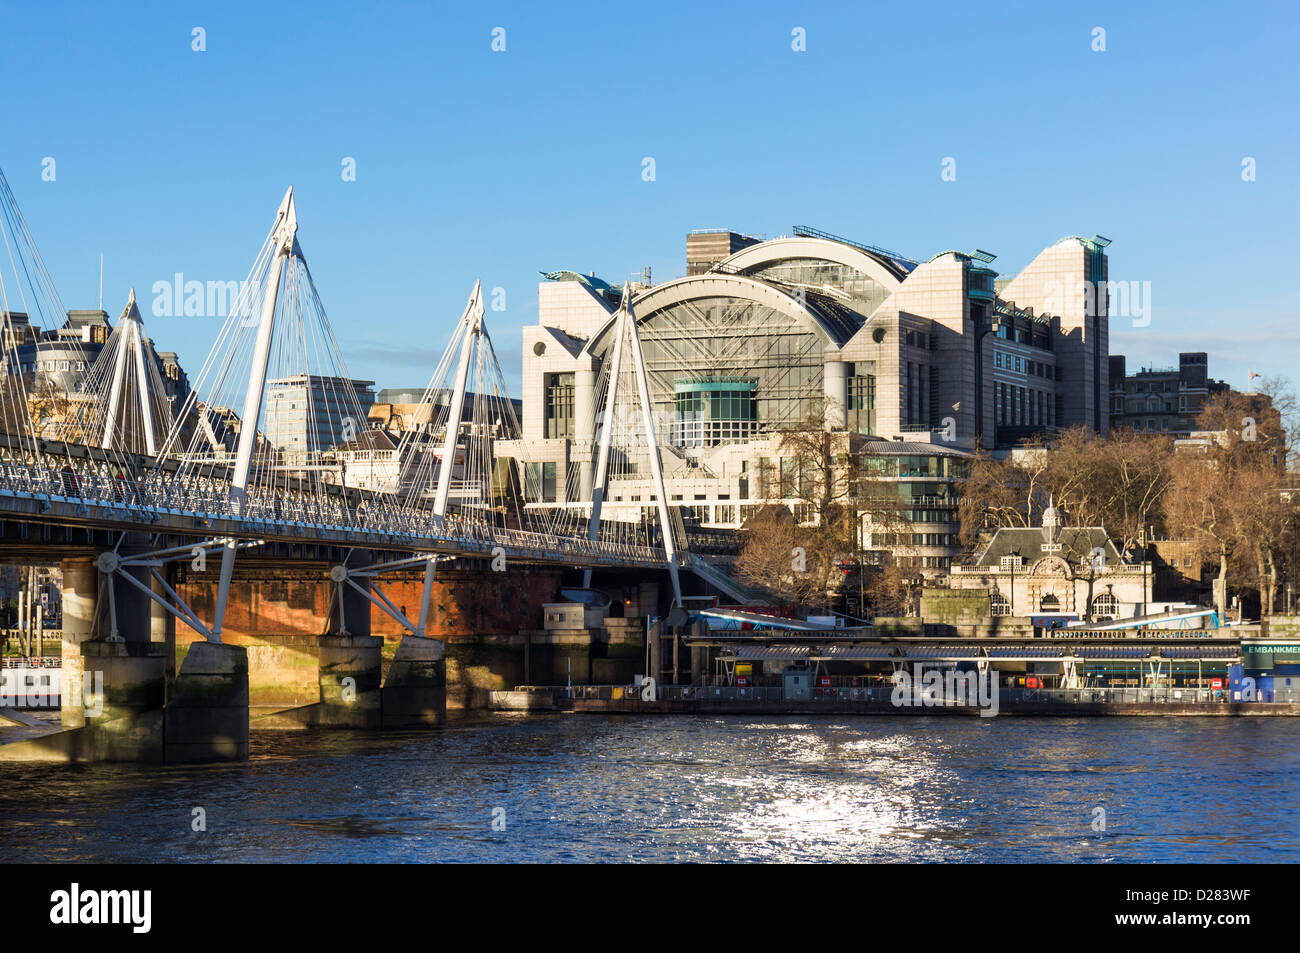 The Embankment Place building housing Charing Cross station, with Hungerford Bridge across The Thames, London, UK - Stock Image